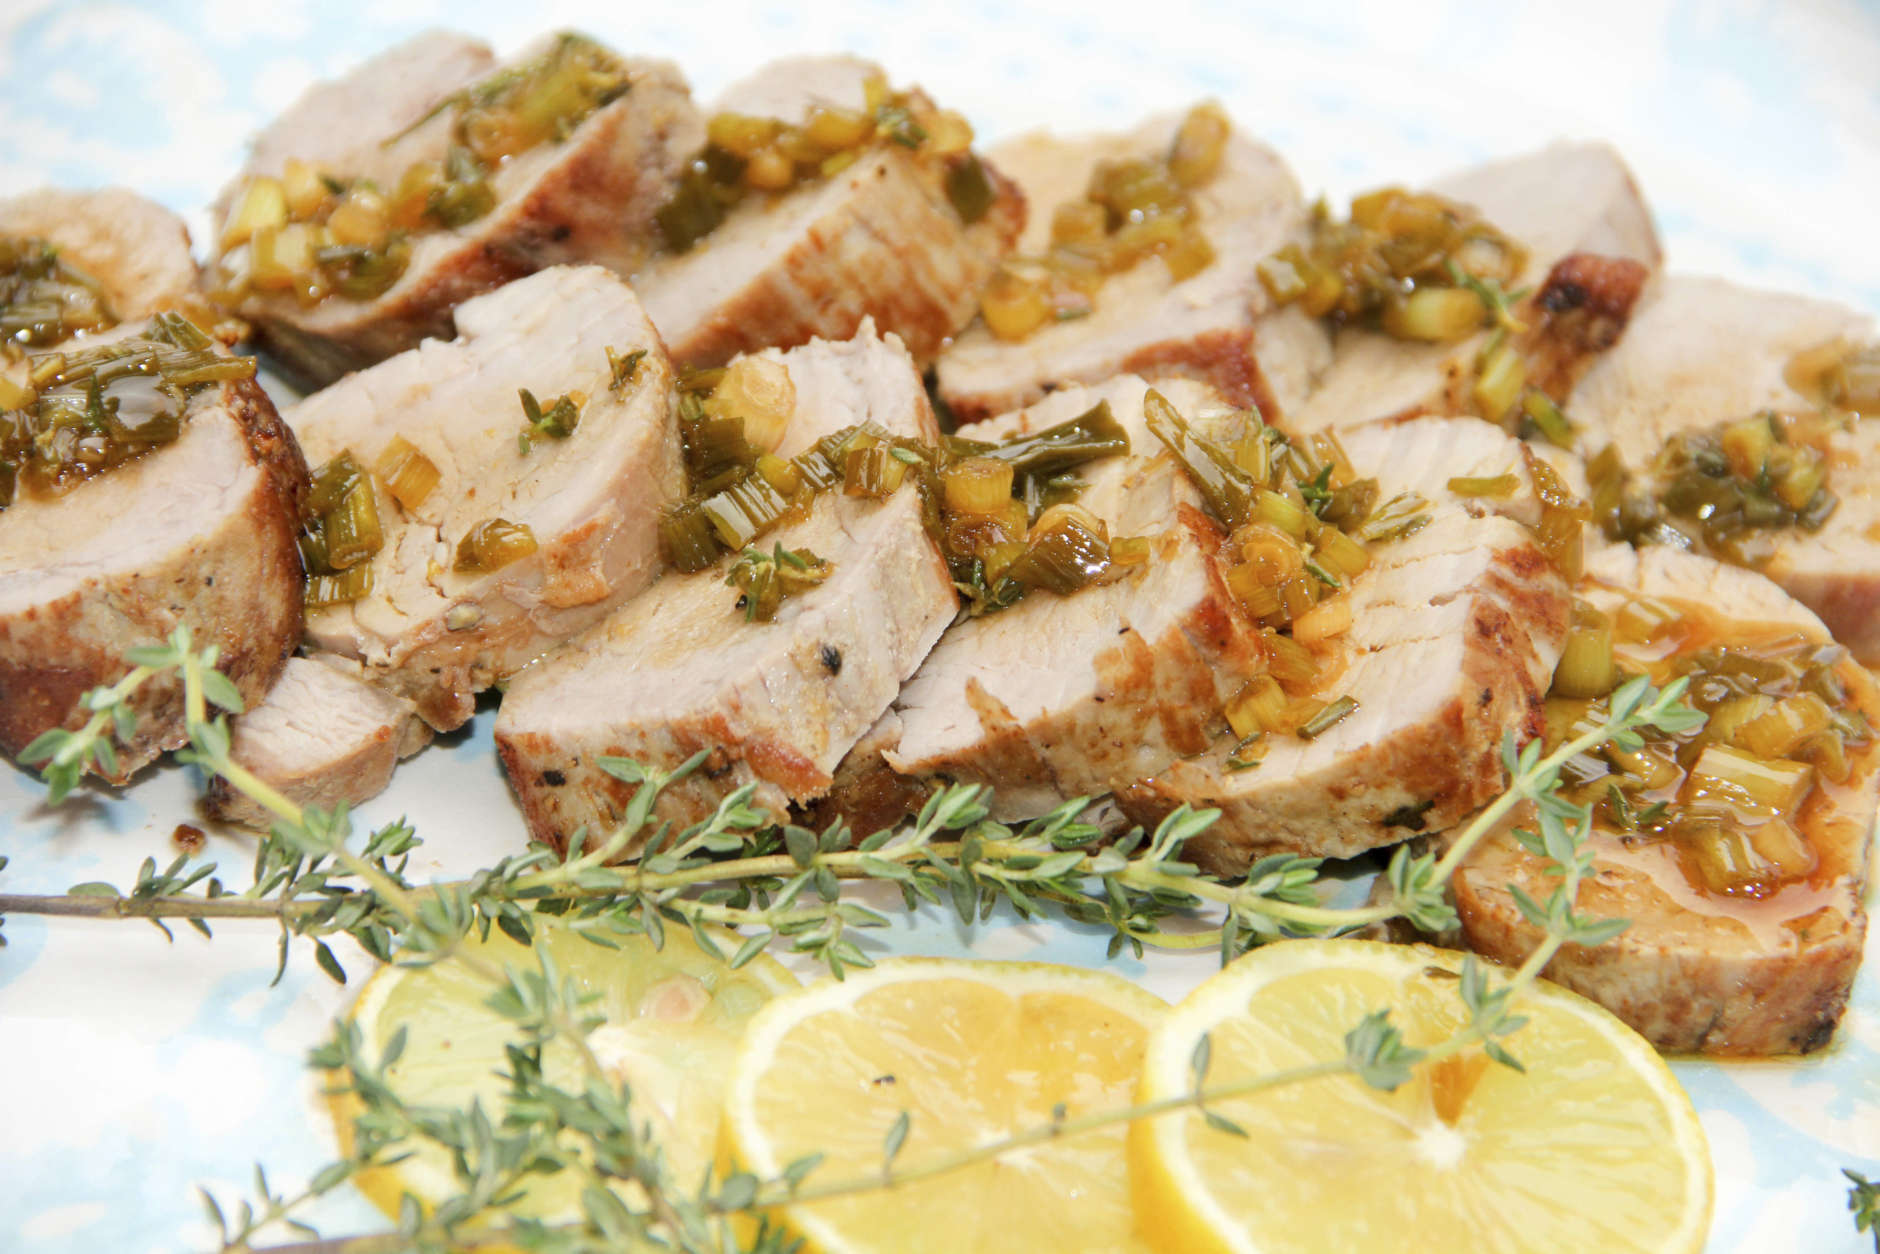 This Aug. 28, 2017 photo shows pork medallions with lemon thyme sauce in Bethesda, Md. This dish is from a recipe by Melissa d'Arabian. (Melissa d'Arabian via AP)